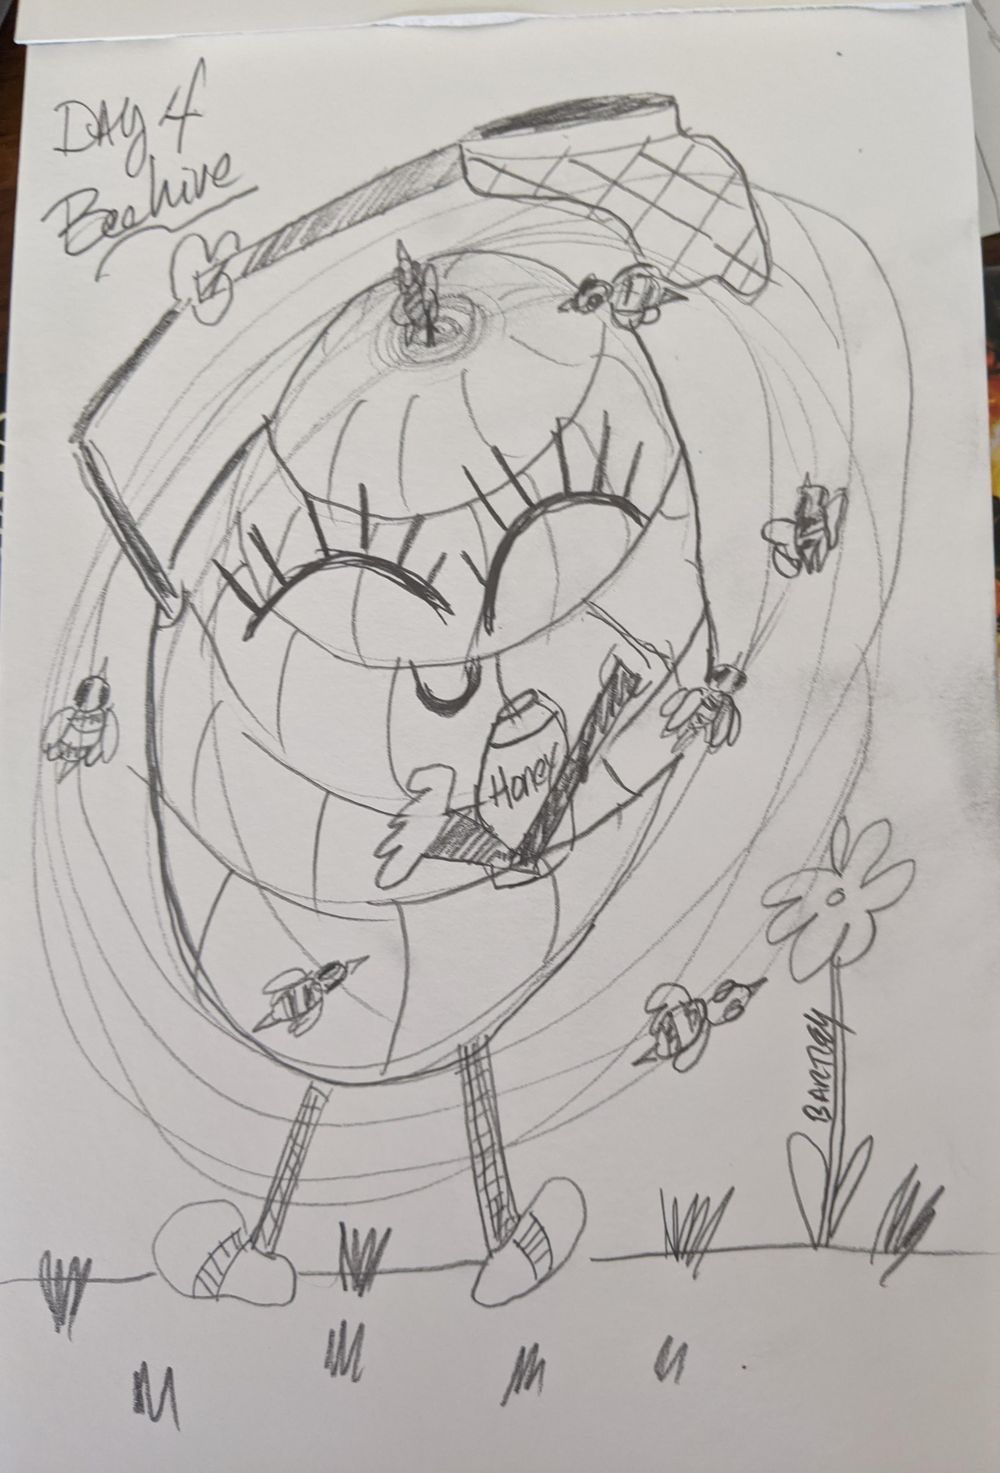 5 minute drawing ideas - image 4 - student project